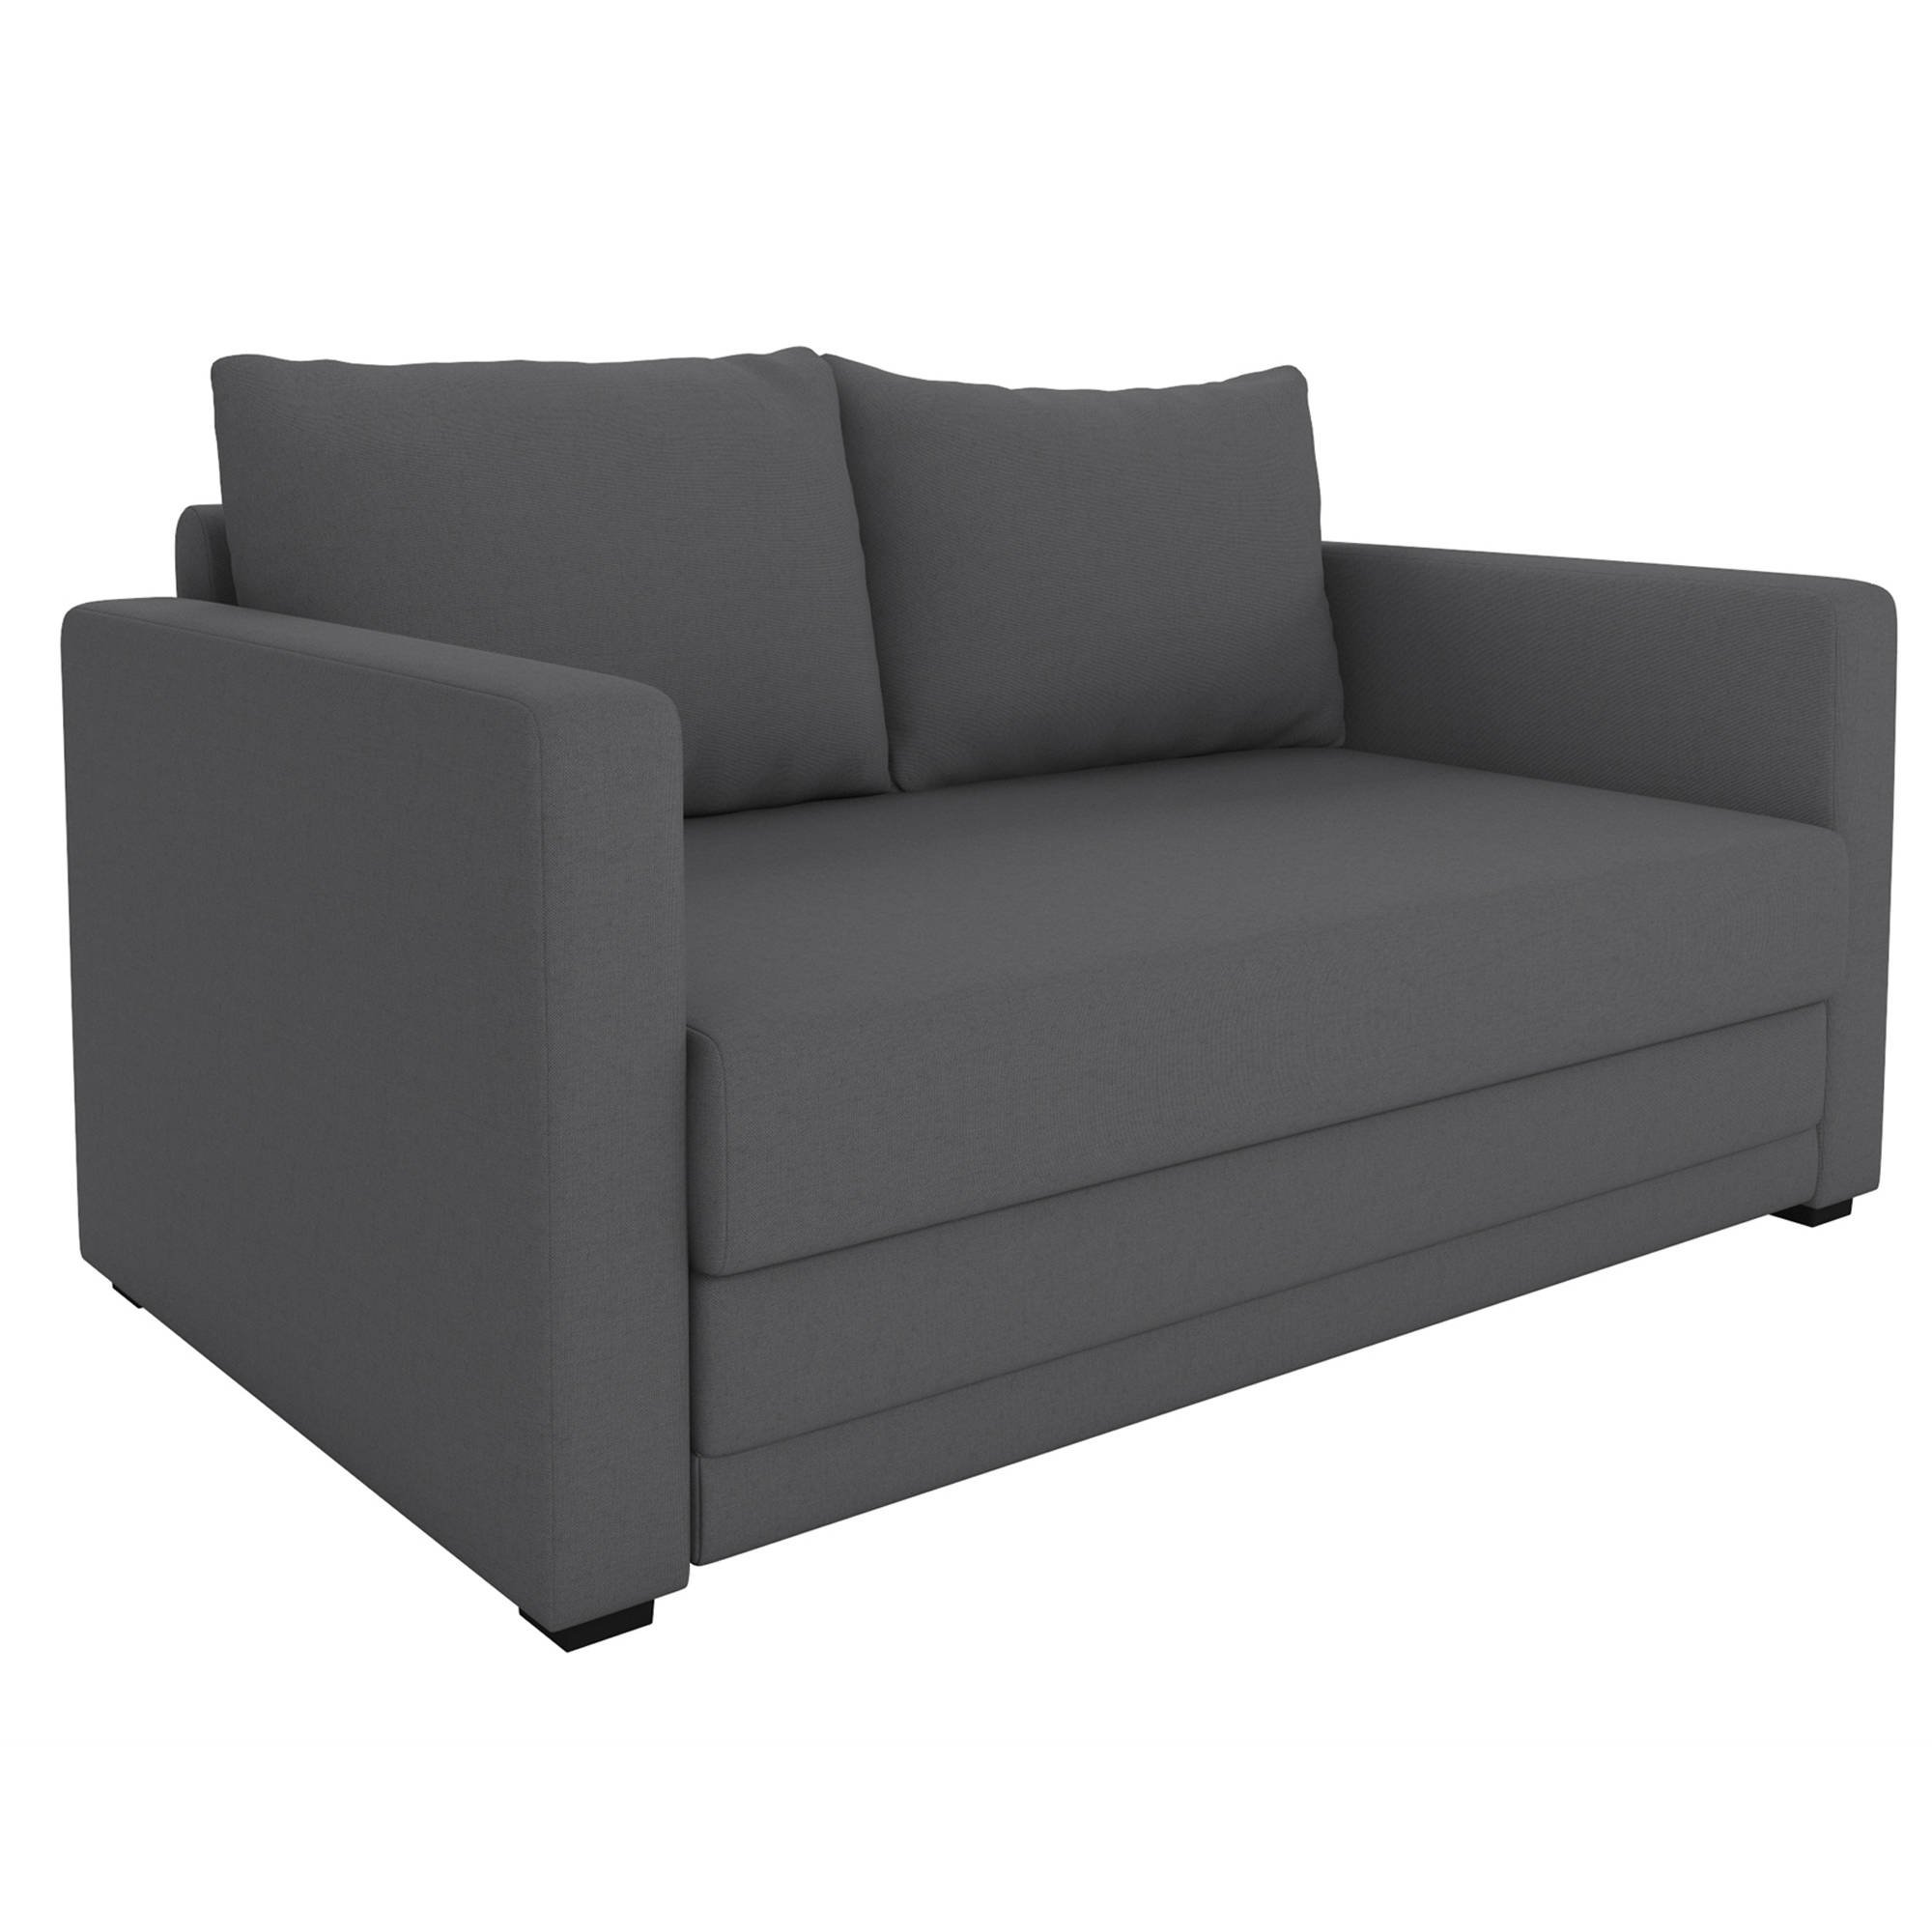 Get Quotations Modern Design With Wide Track Arms And Encased Coil Sofa Chair Sleeper Grey